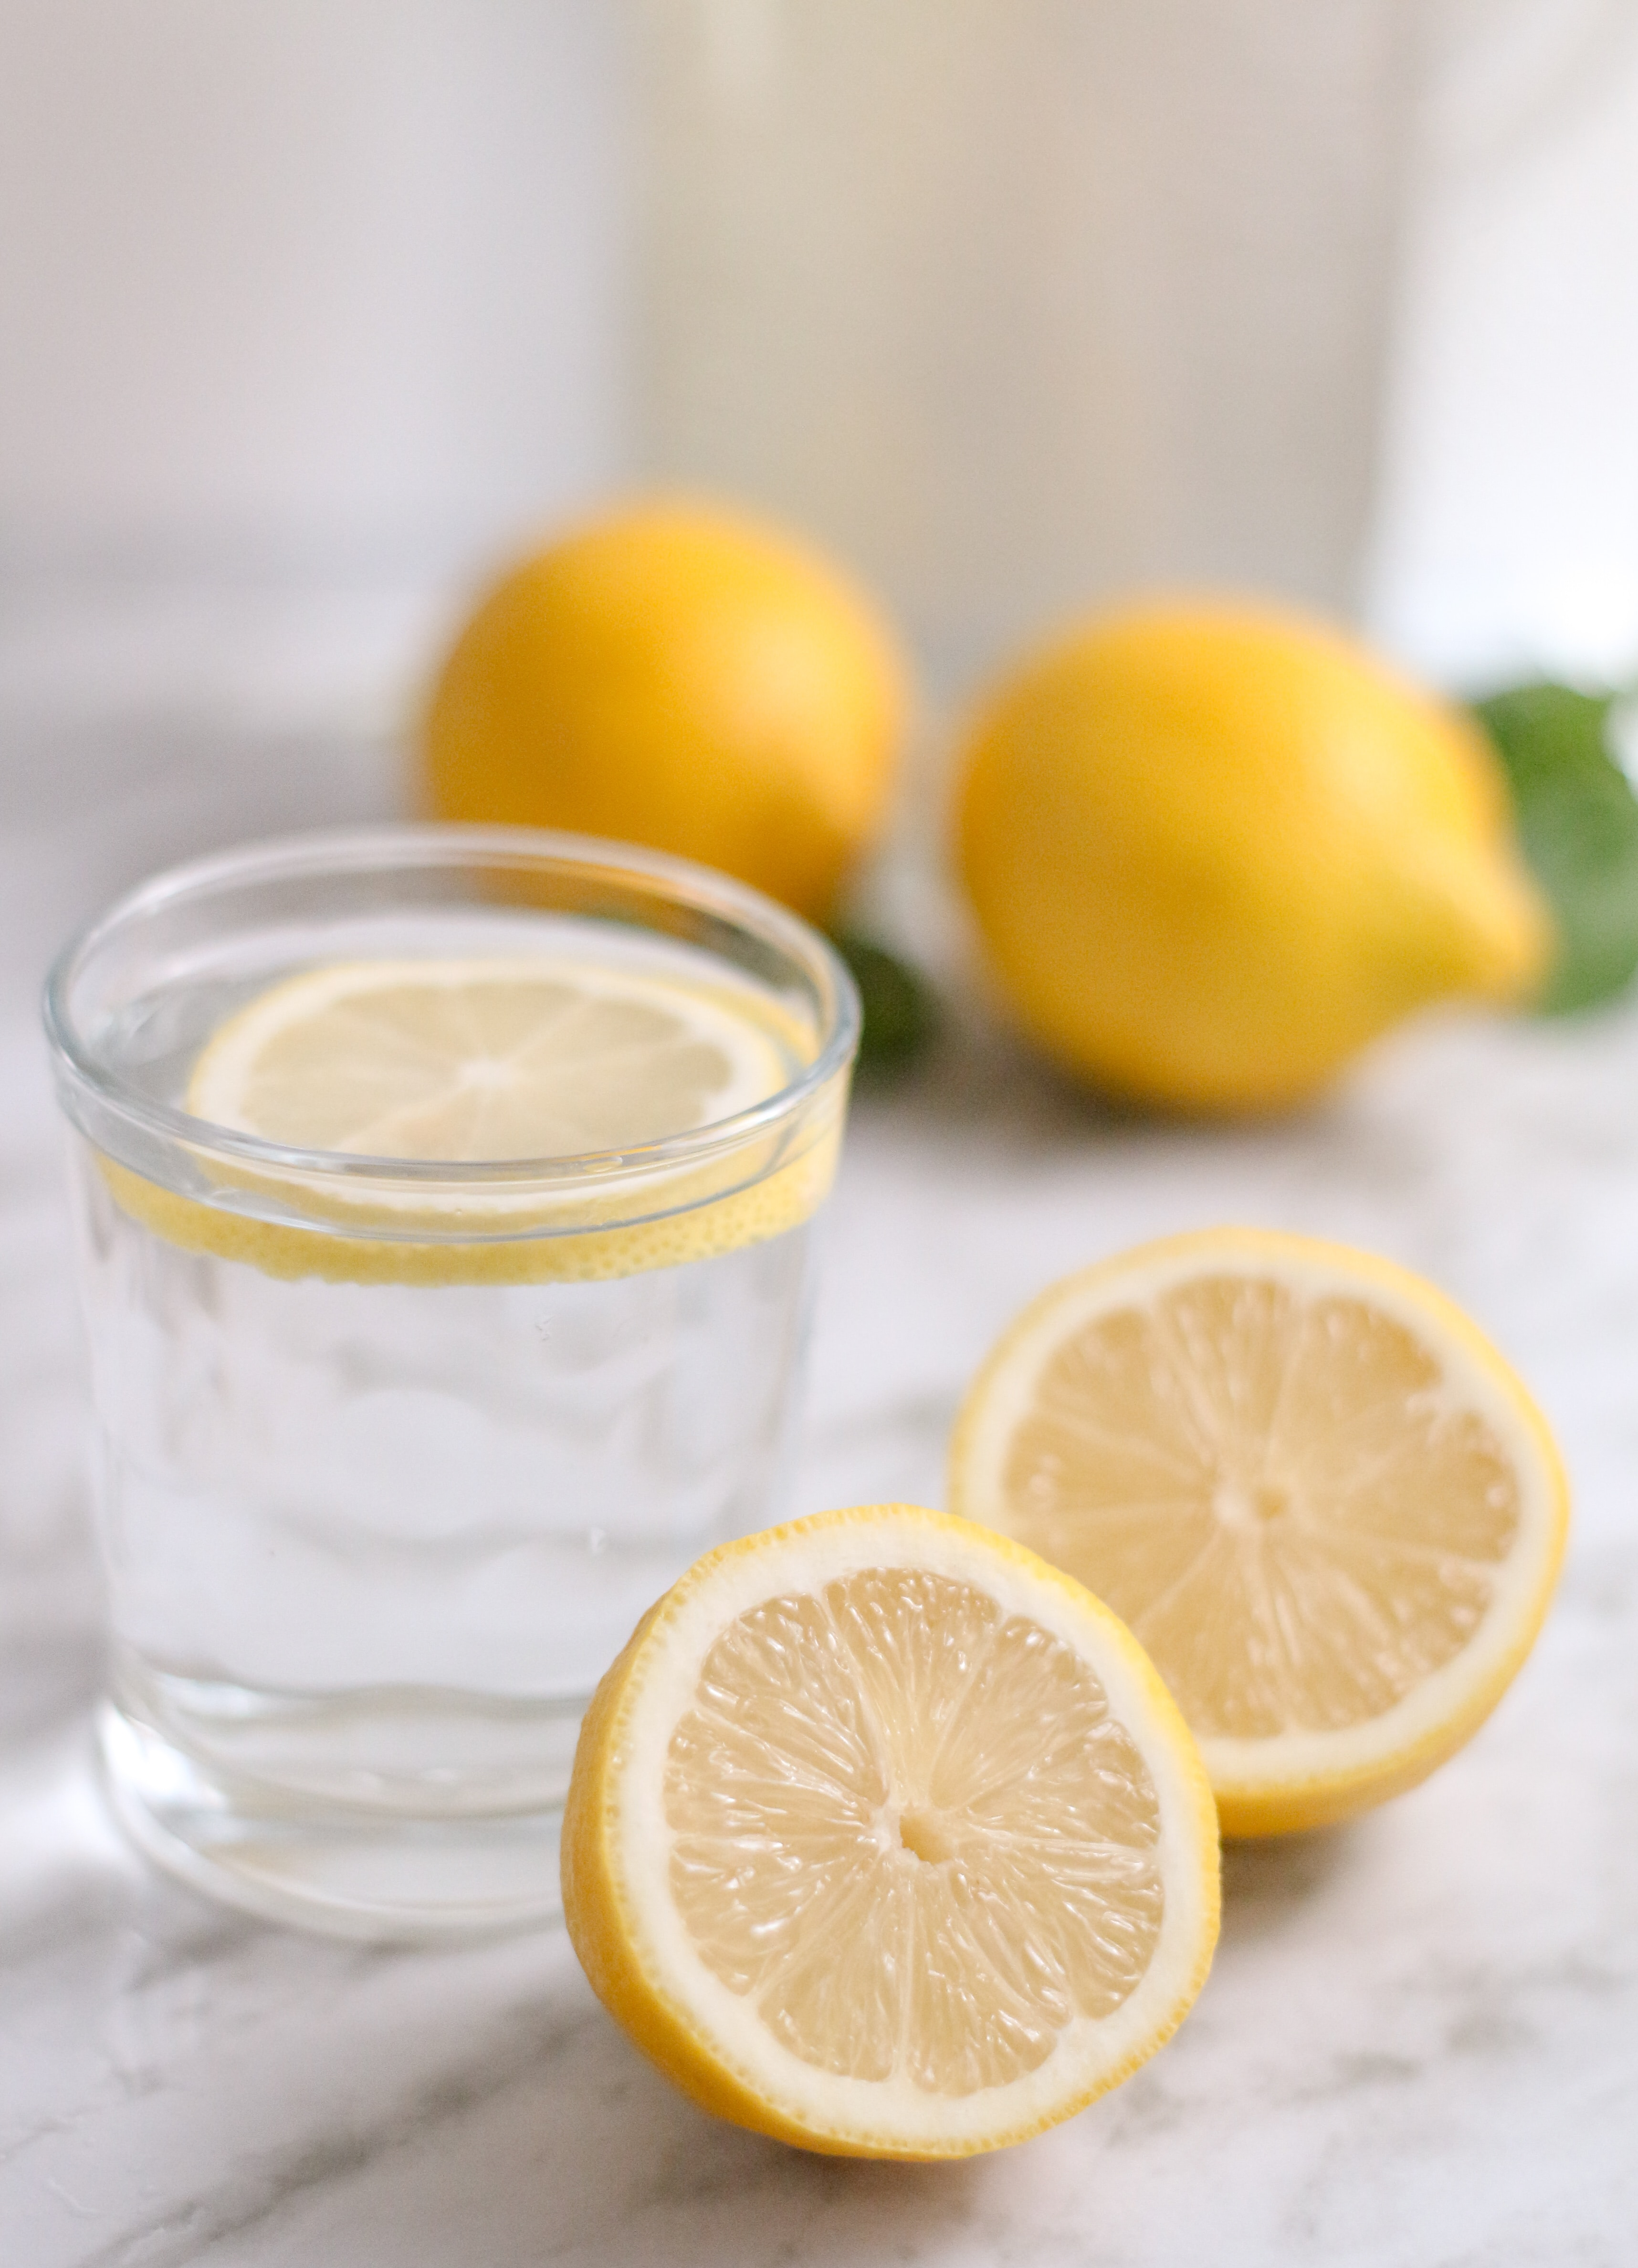 Lemon helps our complexions and helps to maintain the garbage disposal, too!